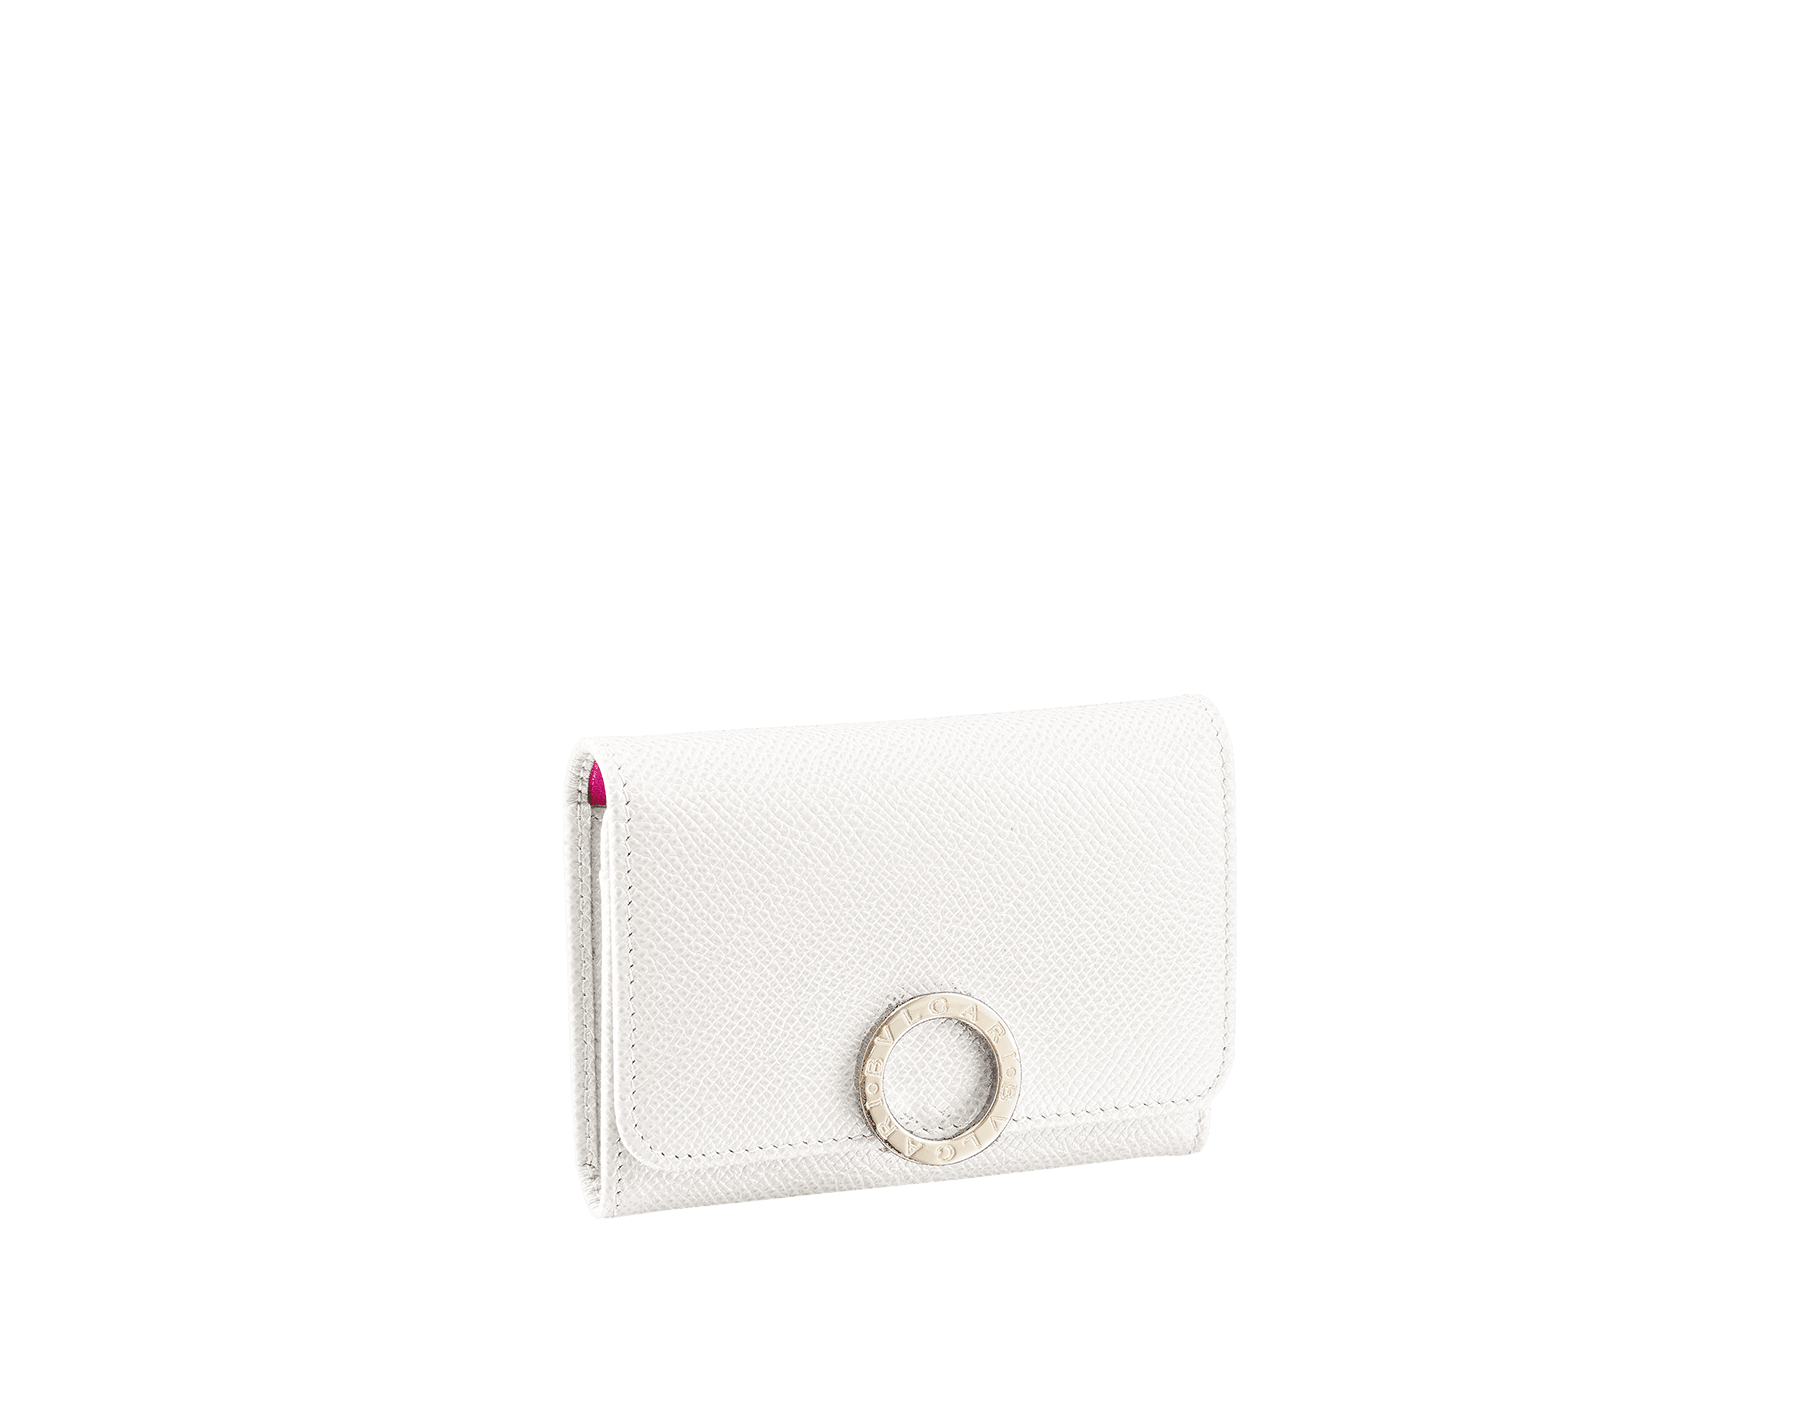 Business card holder in white agate bright grain calf leather, berry tourmaline nappa and tiger's eye nappa lining. Iconic brass light gold plated clip featuring the BVLGARI BVLGARI motif. 282417 image 1